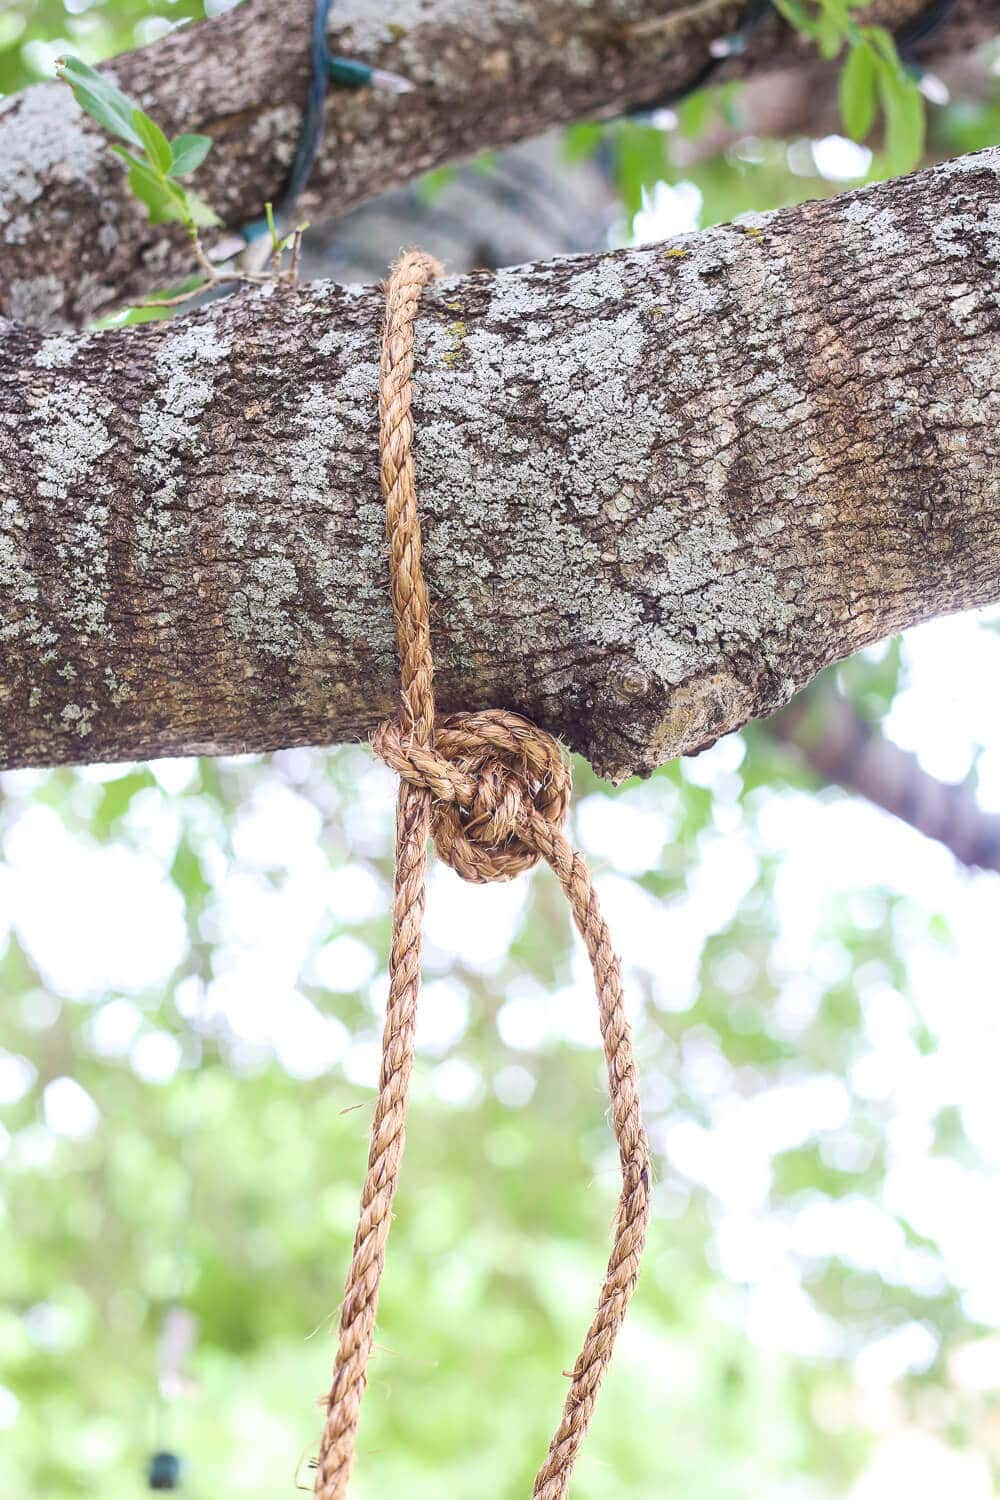 How to tie knot for tree swing